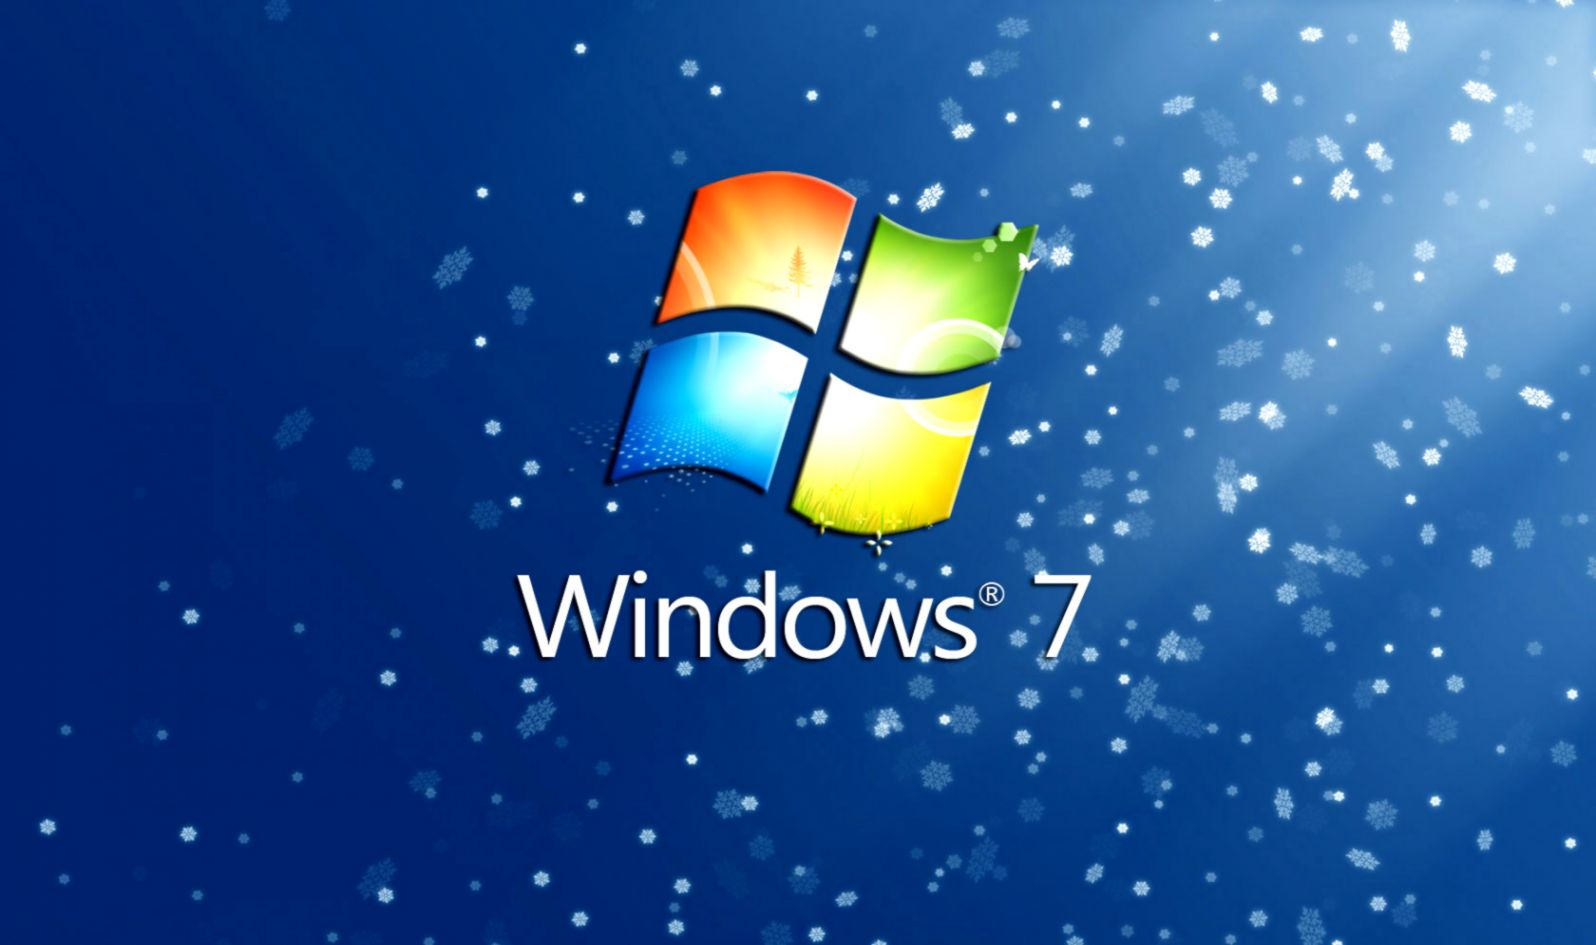 Animated Christmas Desktop Background For Windows 7 Wallpapers 1080p